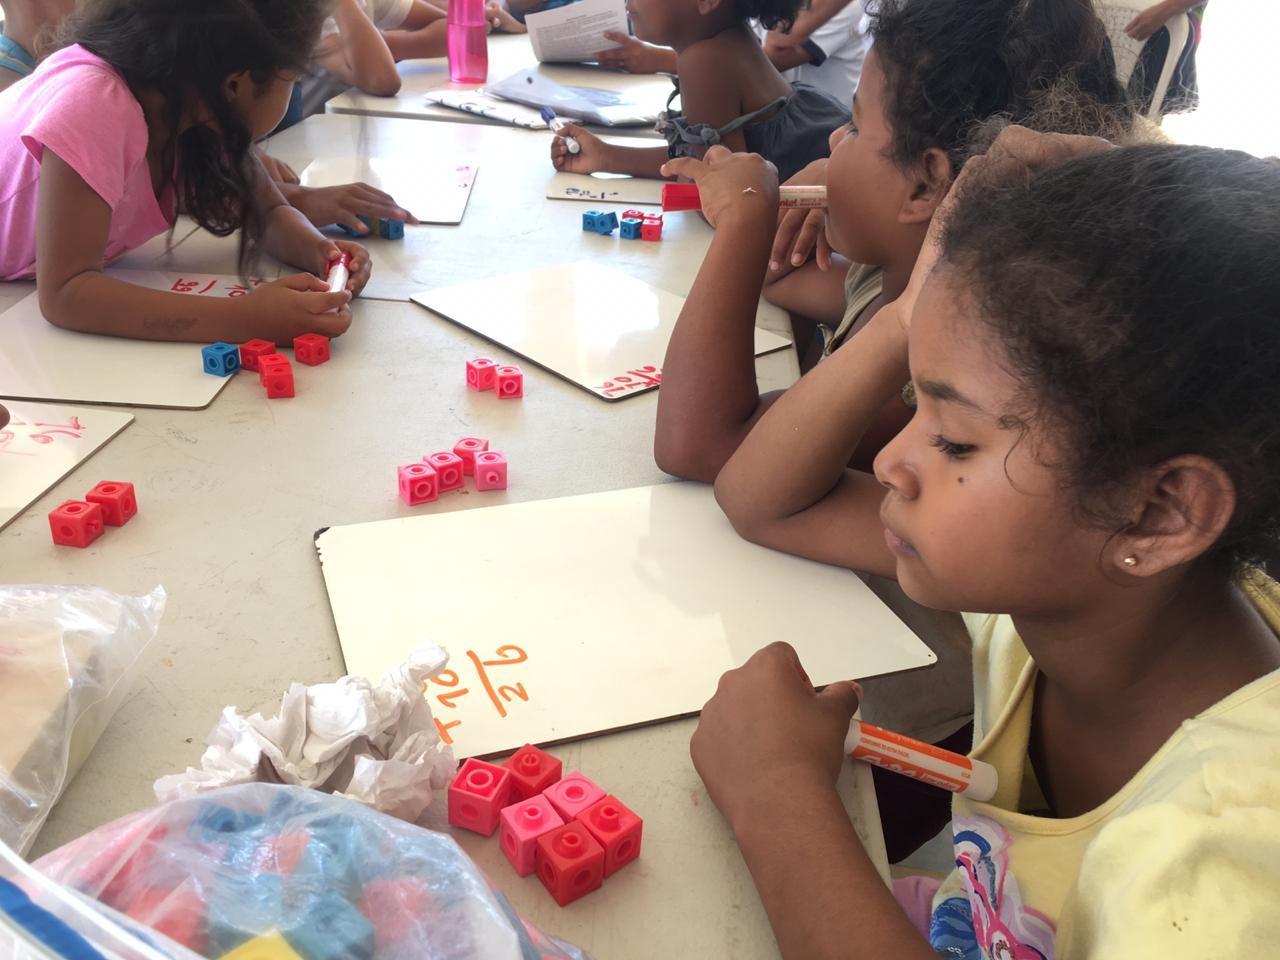 Students use manipulatives donated by Seven Points Prep to enhance their math learning.